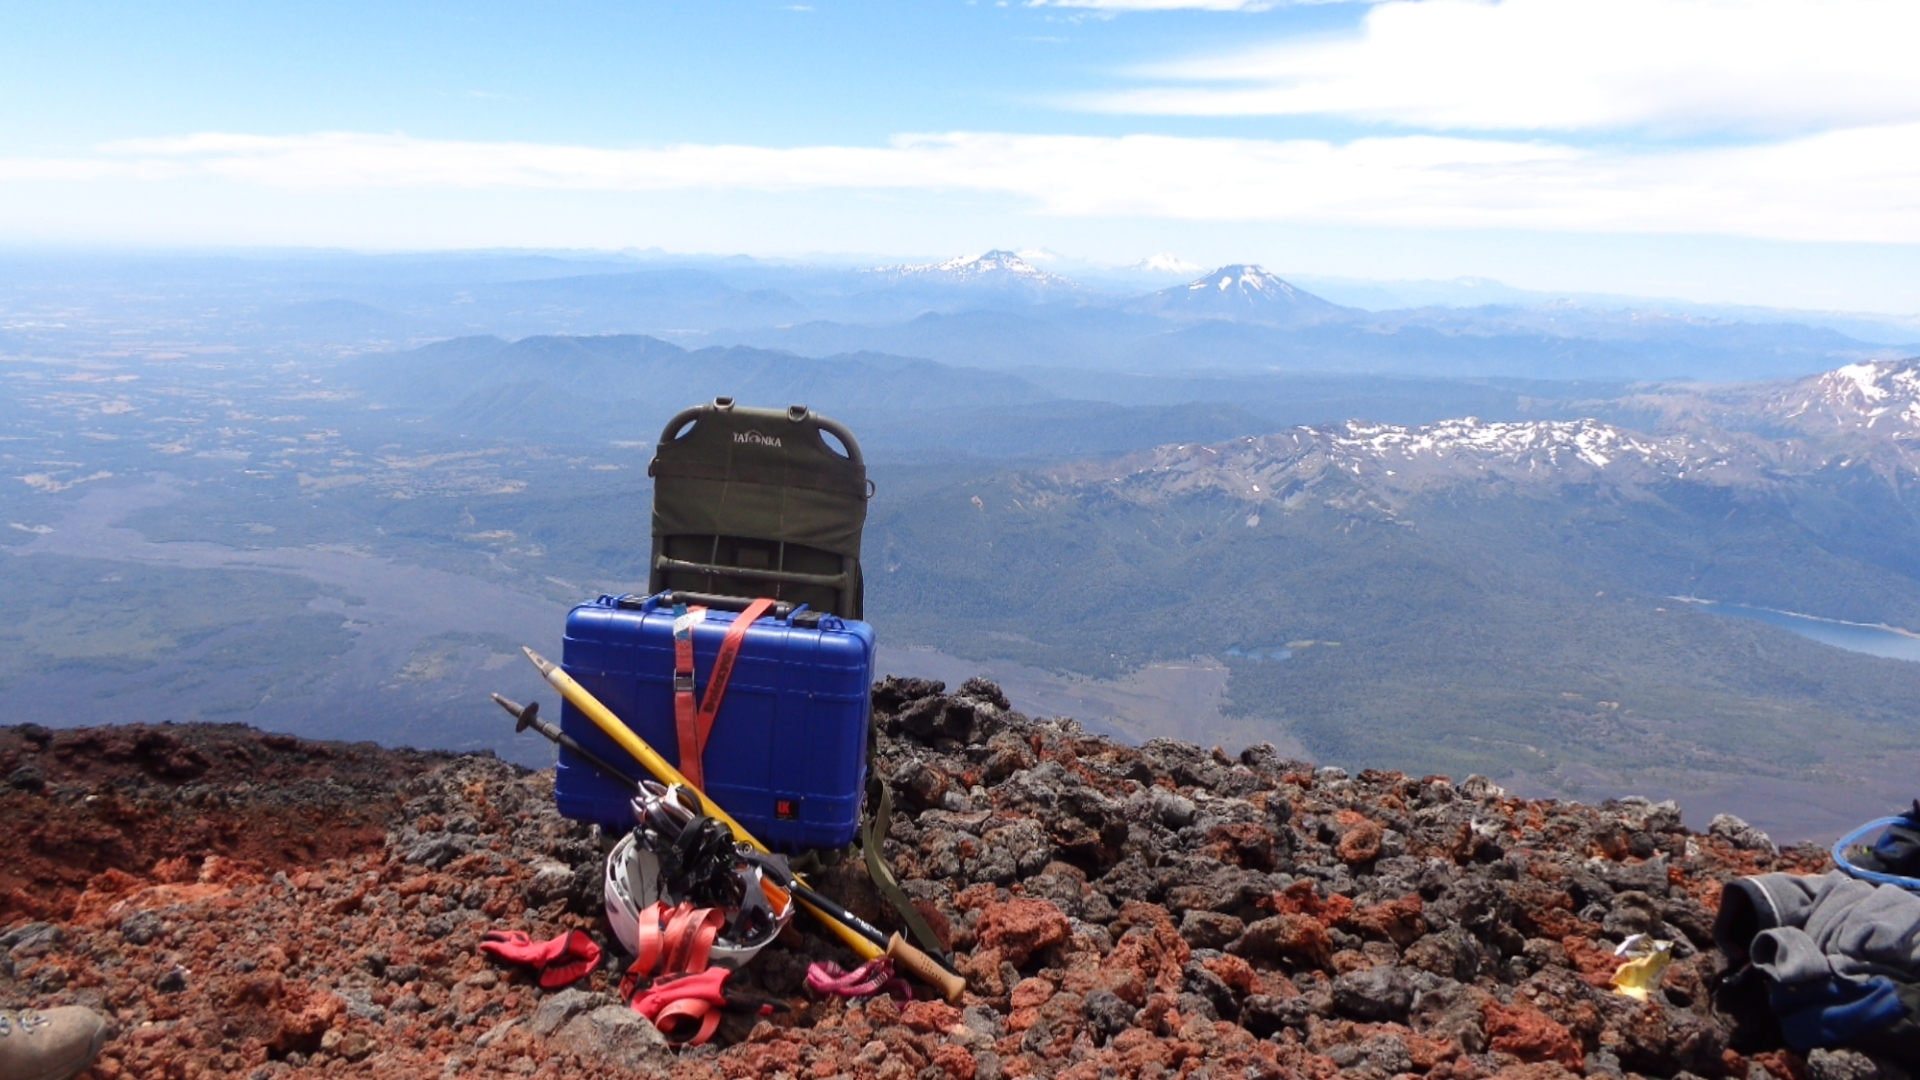 Transportable seismic station located on a mountain in Alaska